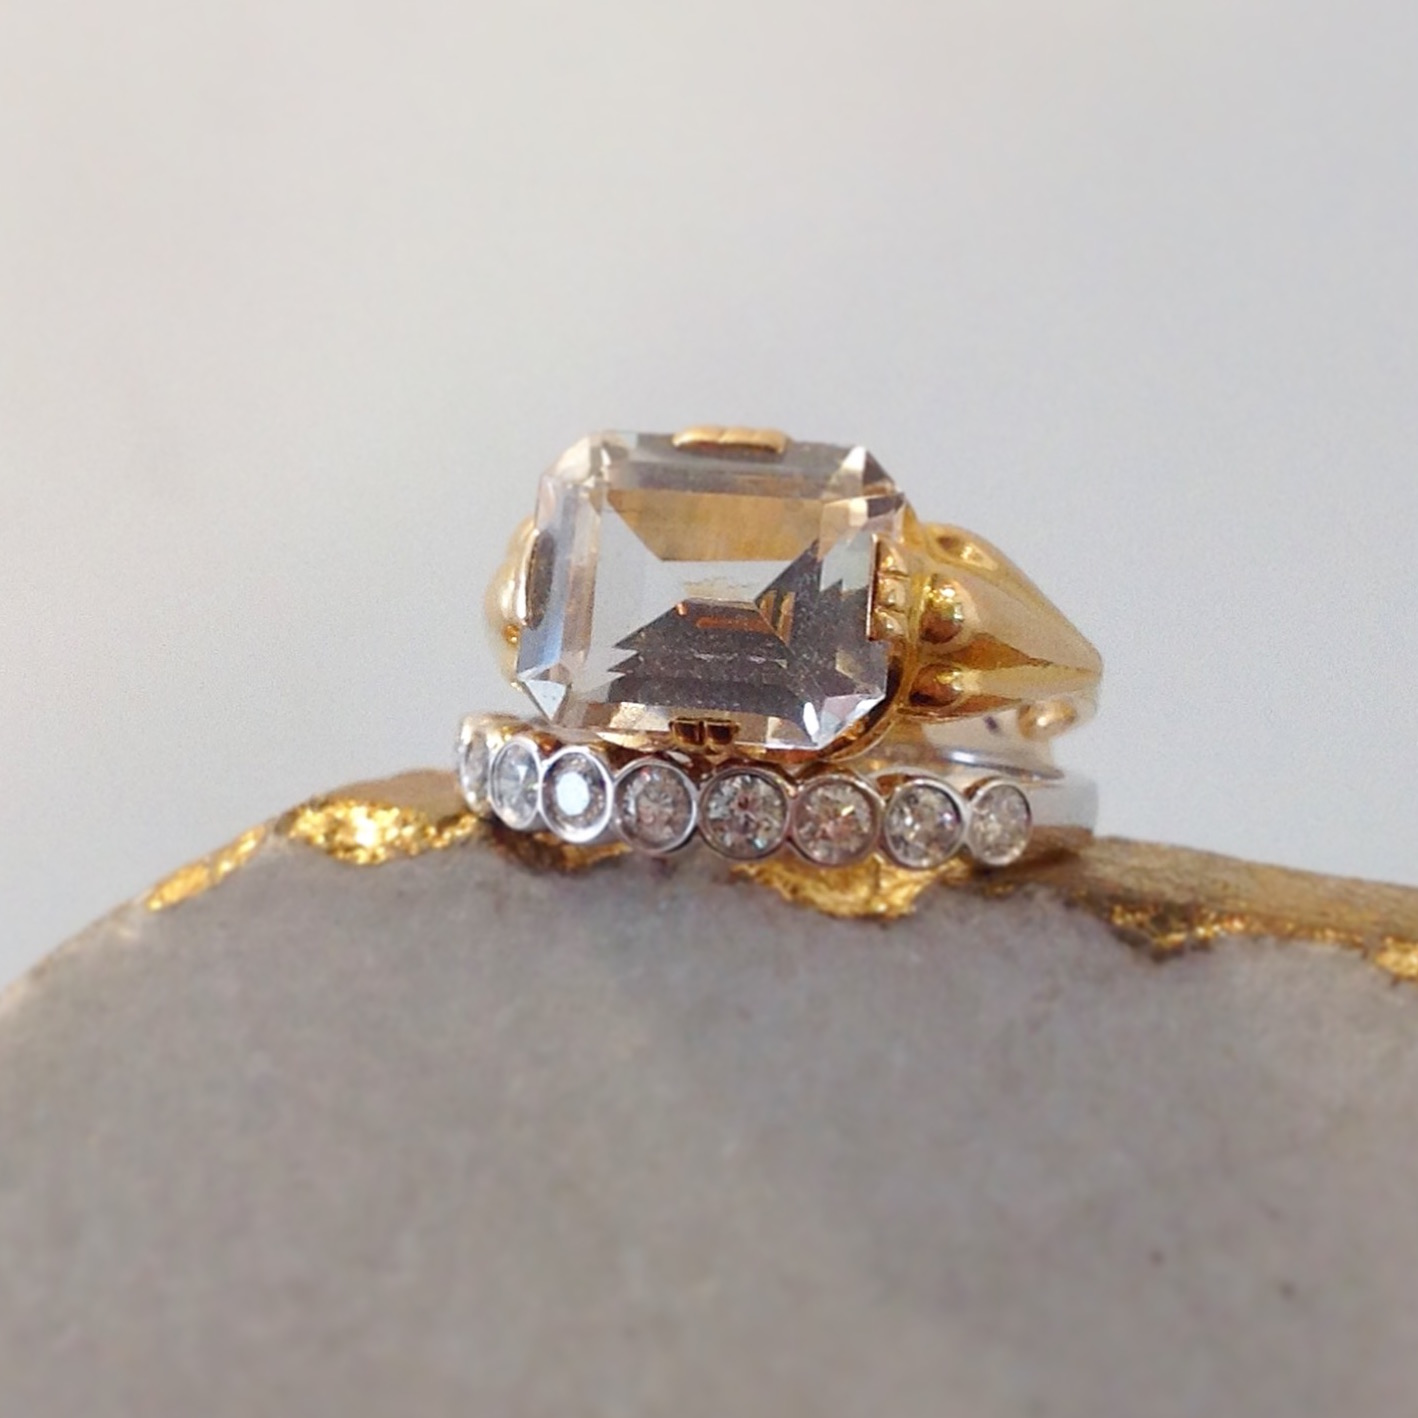 Vintage 18K Yellow Gold Rock Crystal Ring with 14K White Gold Bezel Set White Sapphire Band